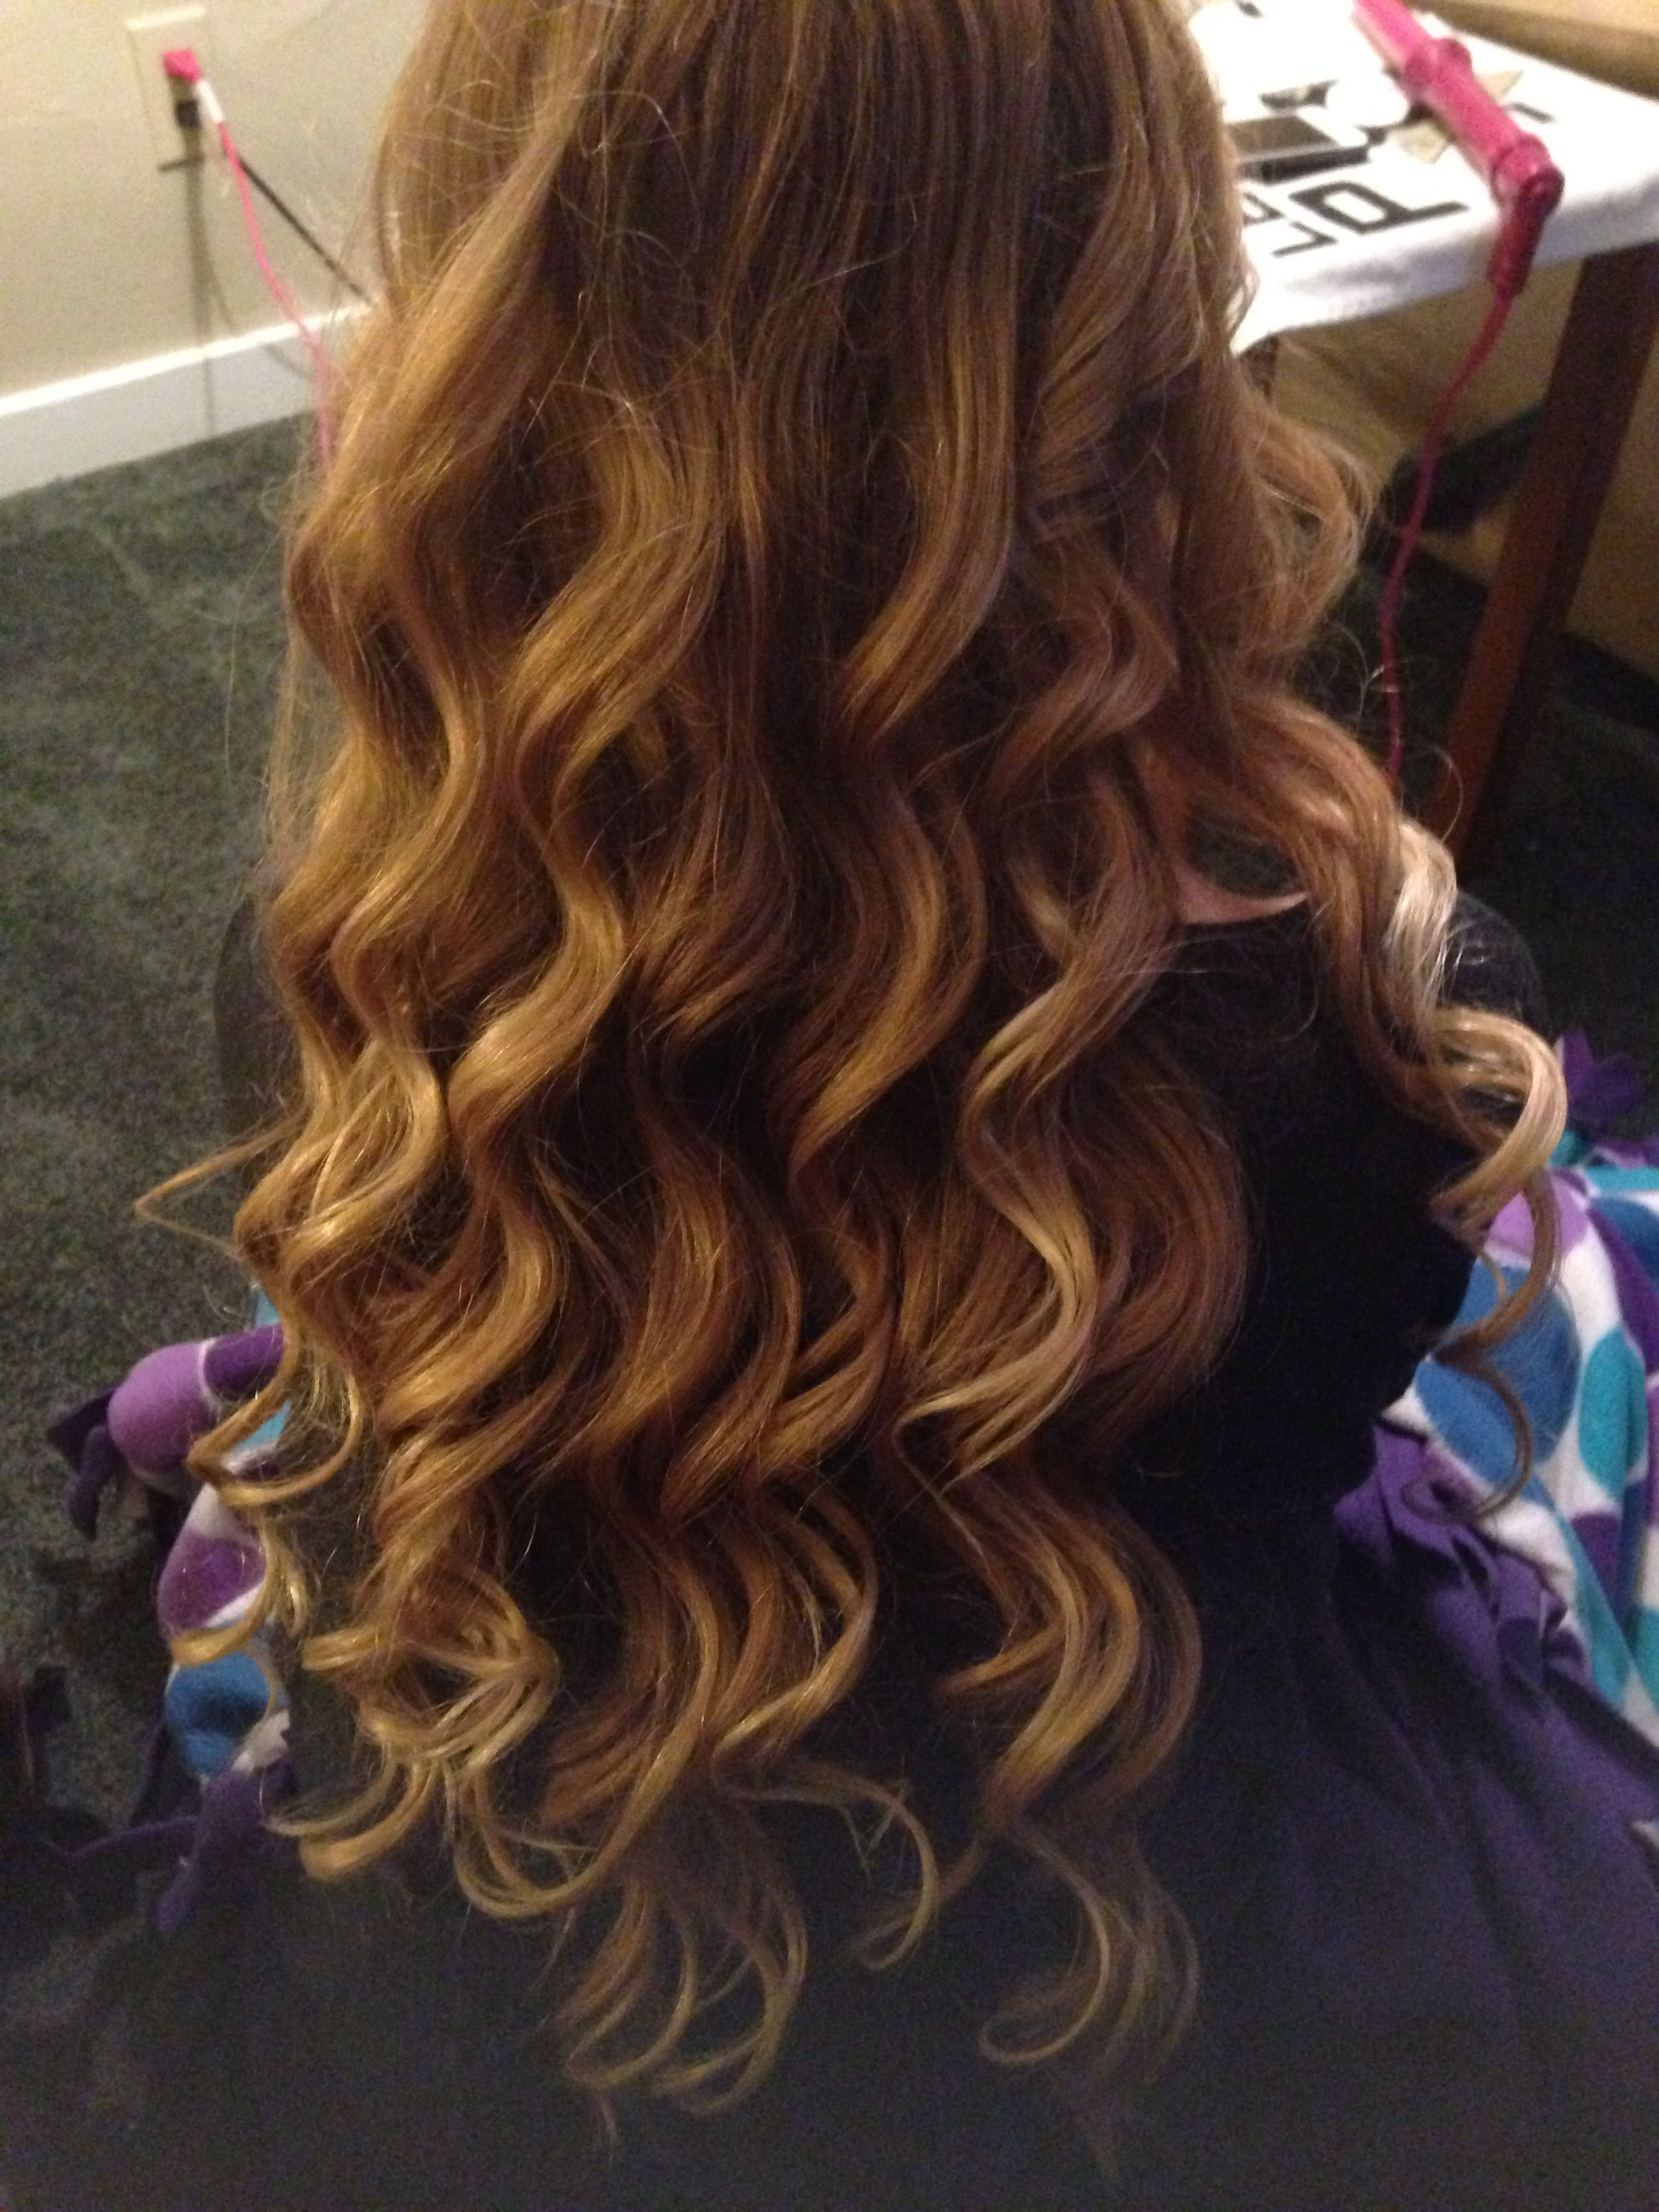 Loose wand curls | All dolled up | Wand curls, Wond curls ...  Loose wand curl...